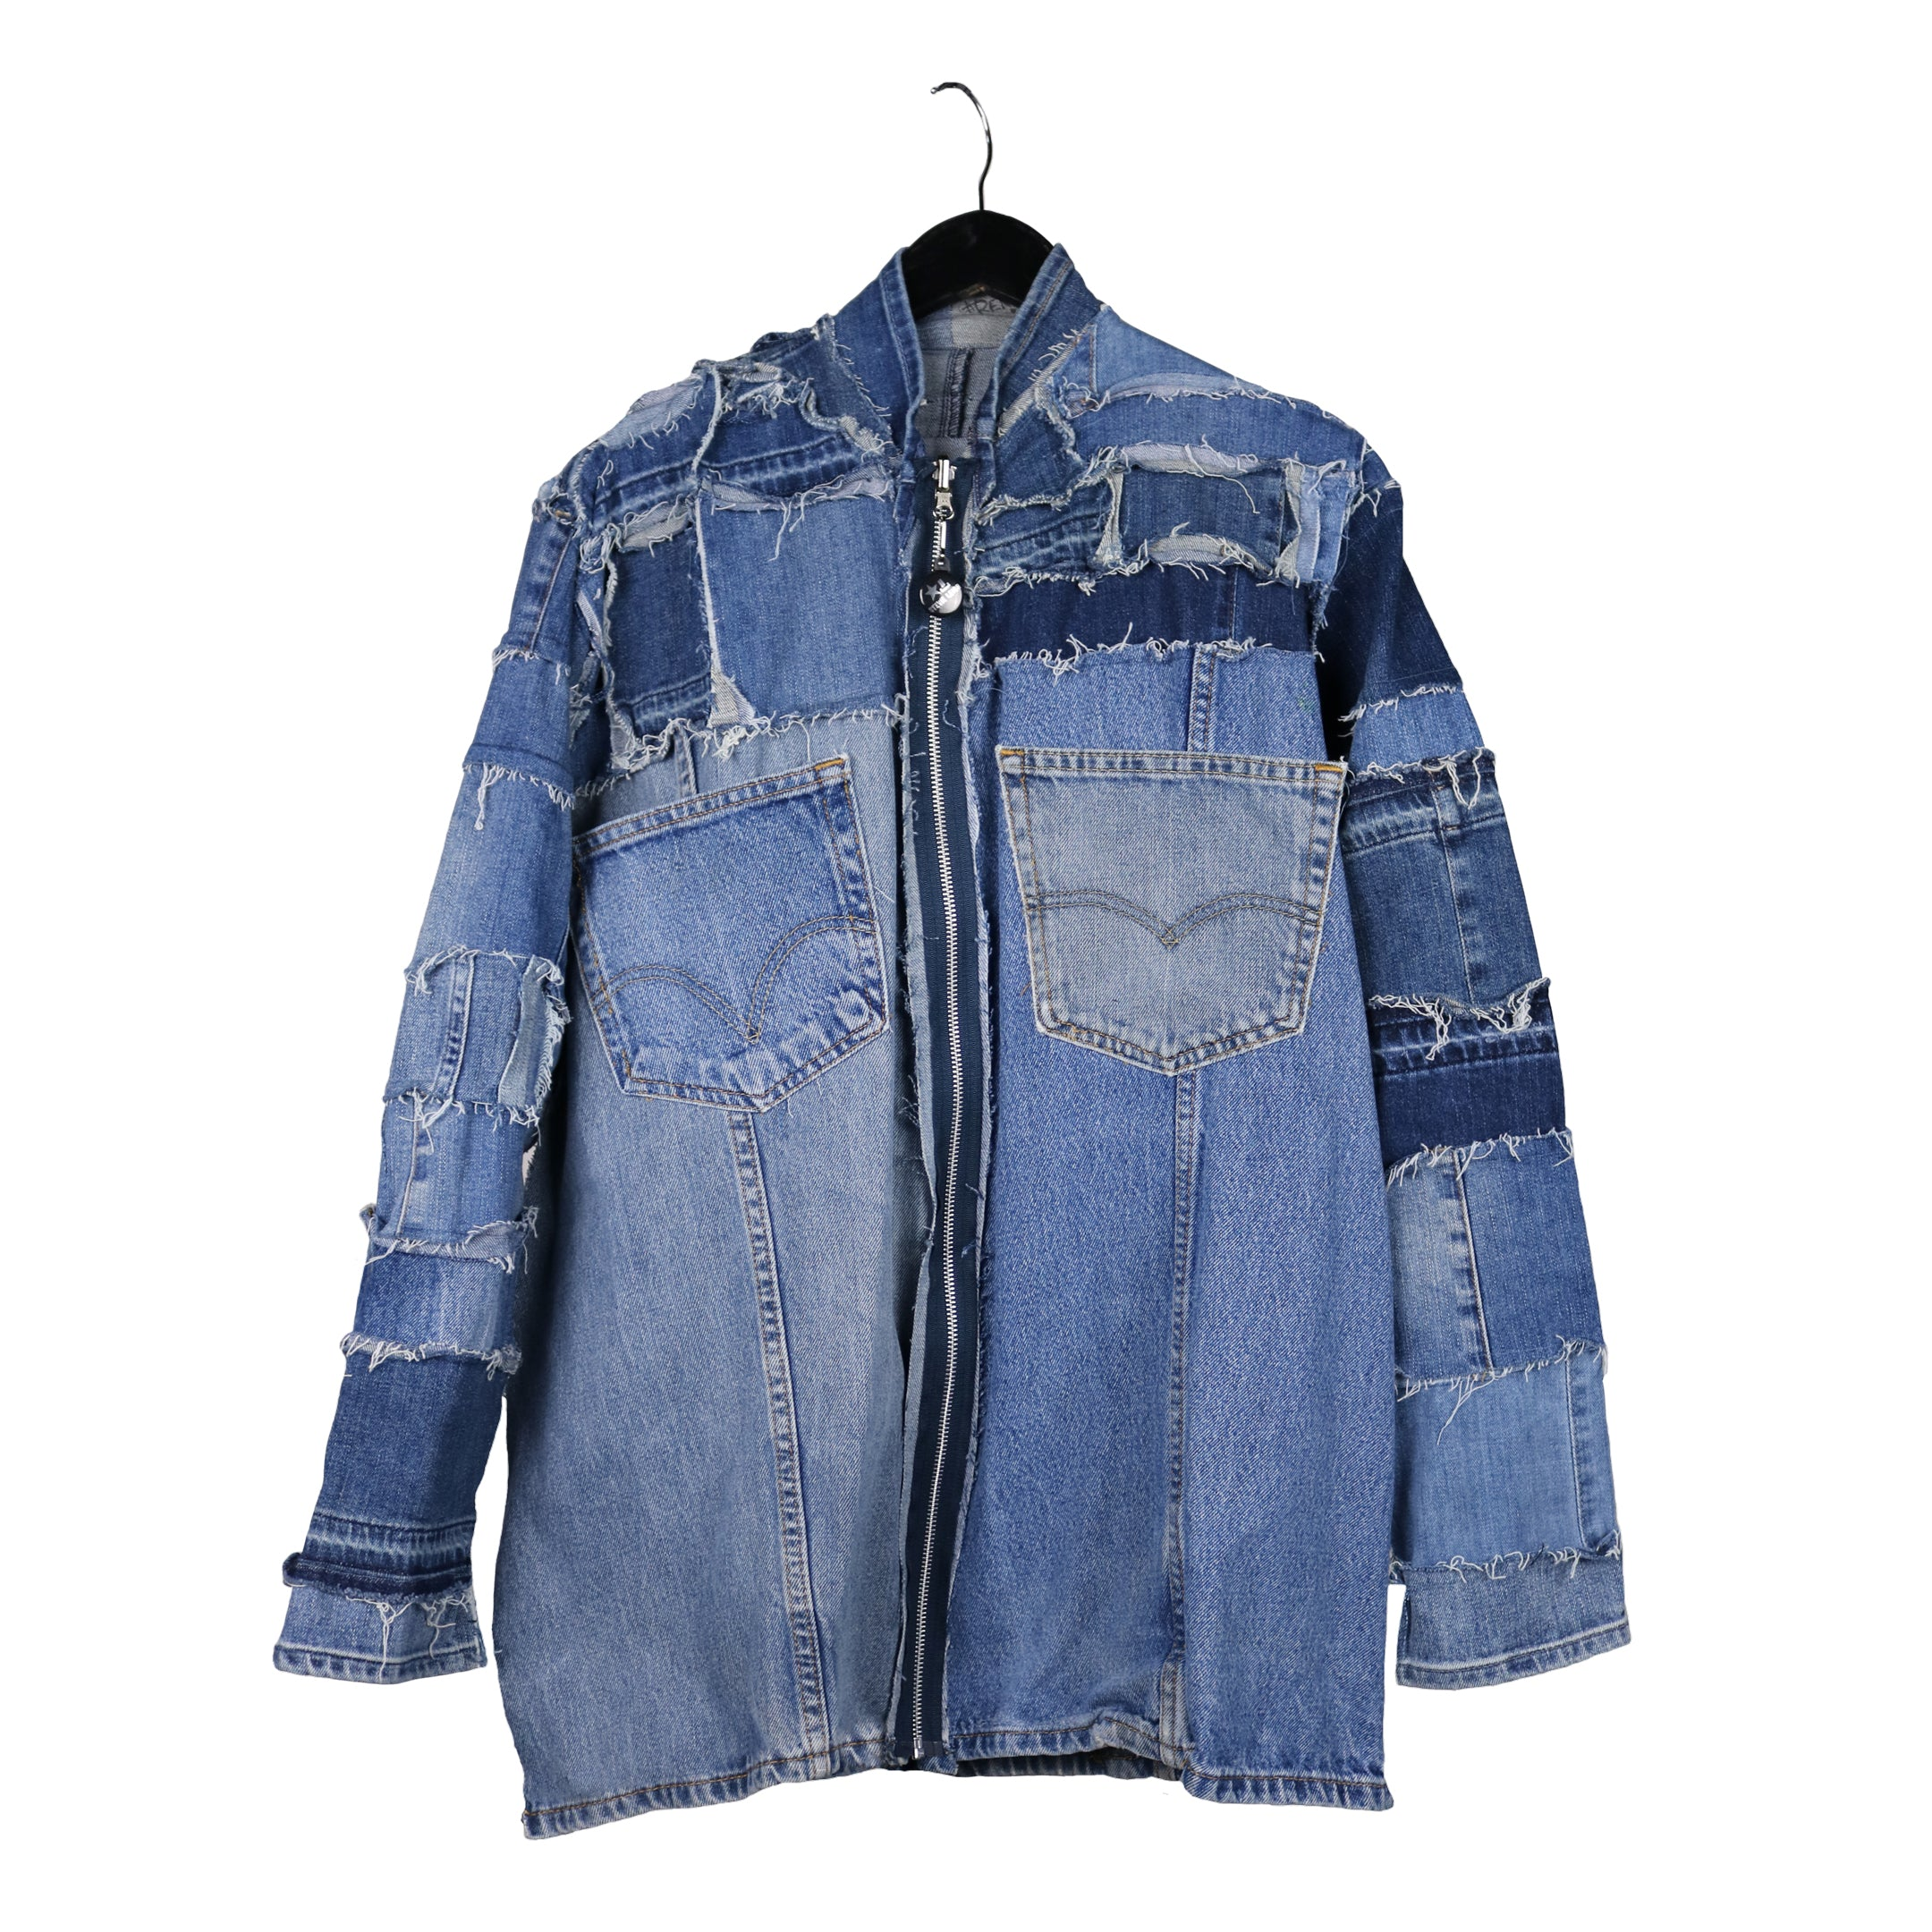 Sustainable denim jacket by stevie leigh